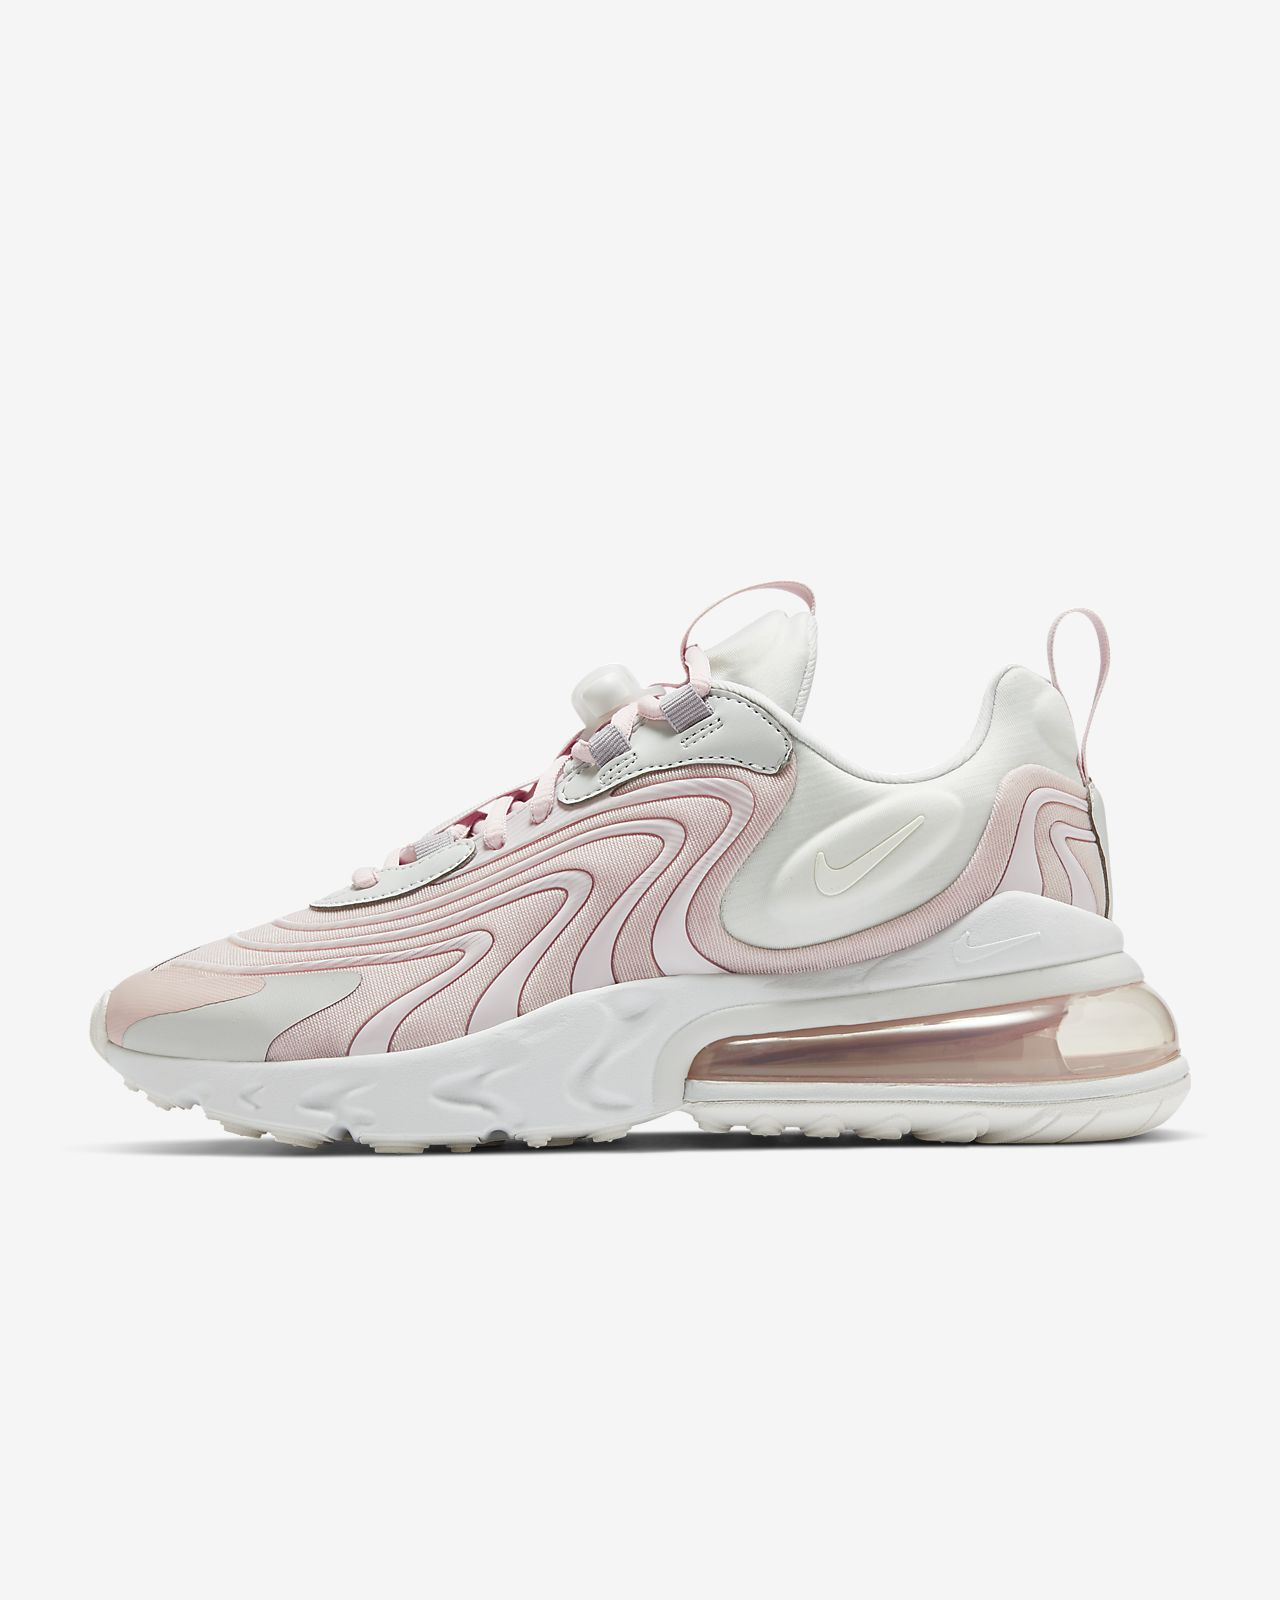 Nike Air Max 270 React ENG Damenschuh